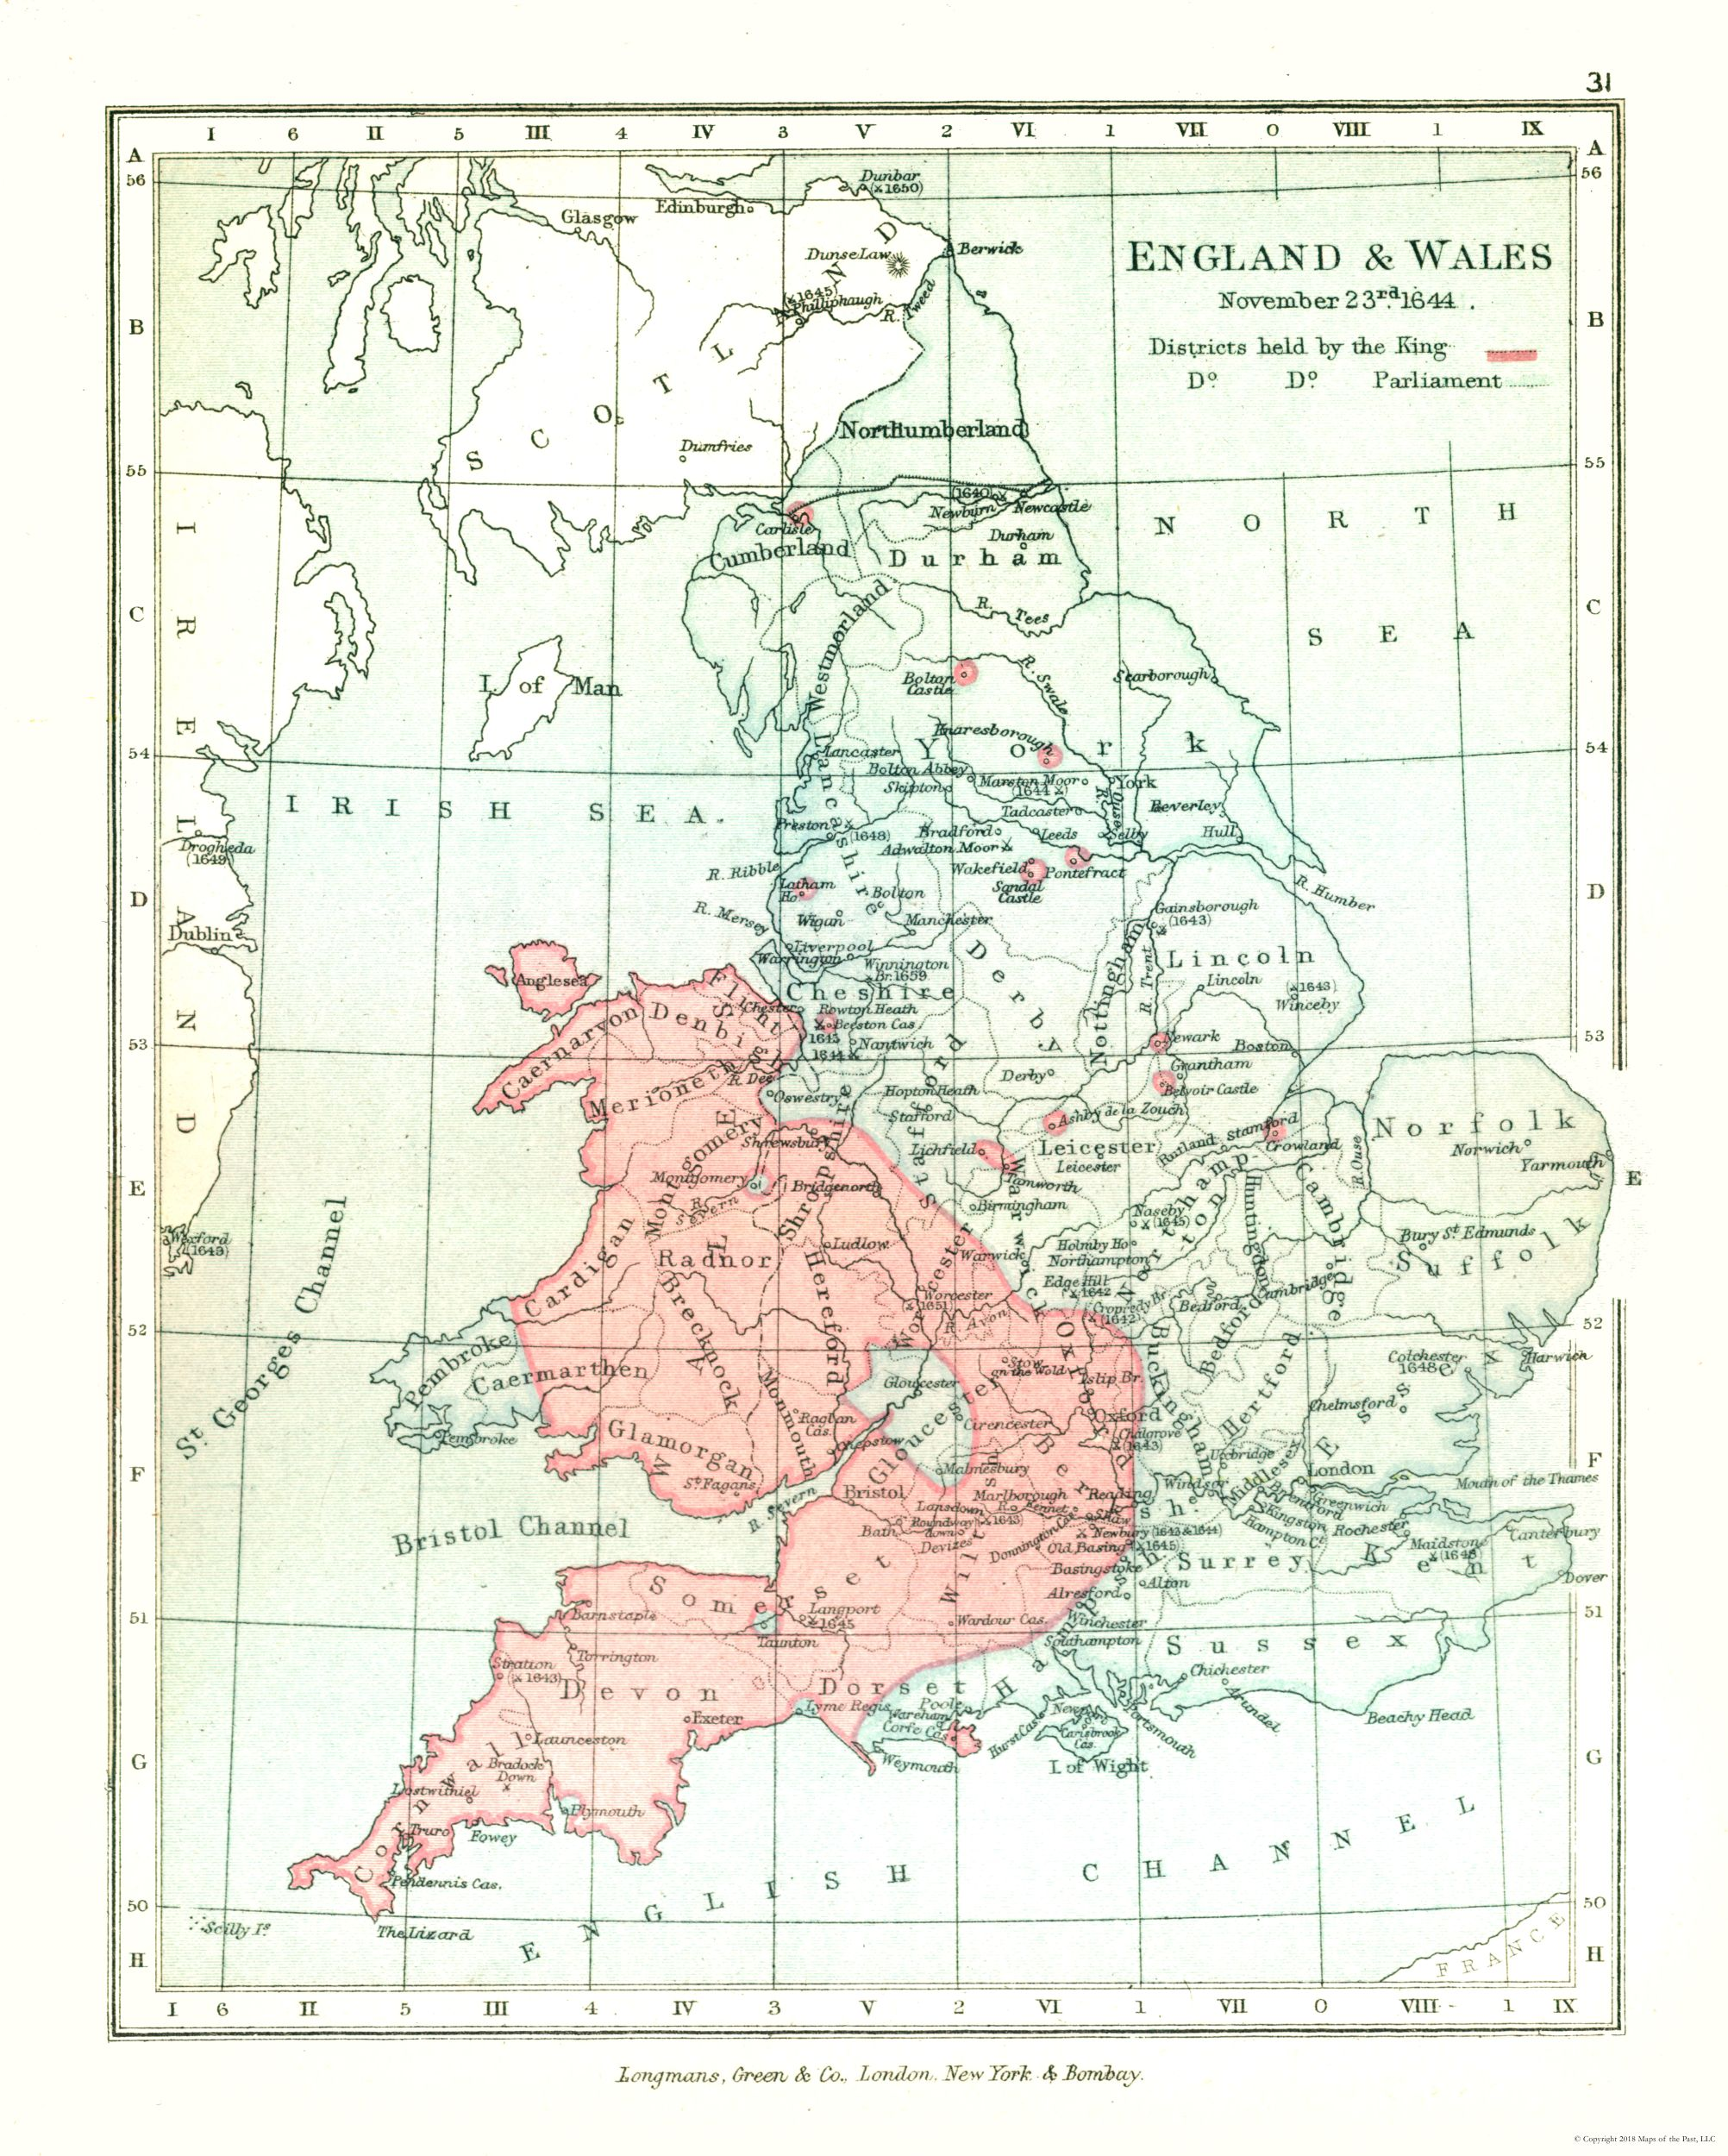 Map Of England And Wales.Old International Maps England Wales In 1644 Gardiner 1902 23